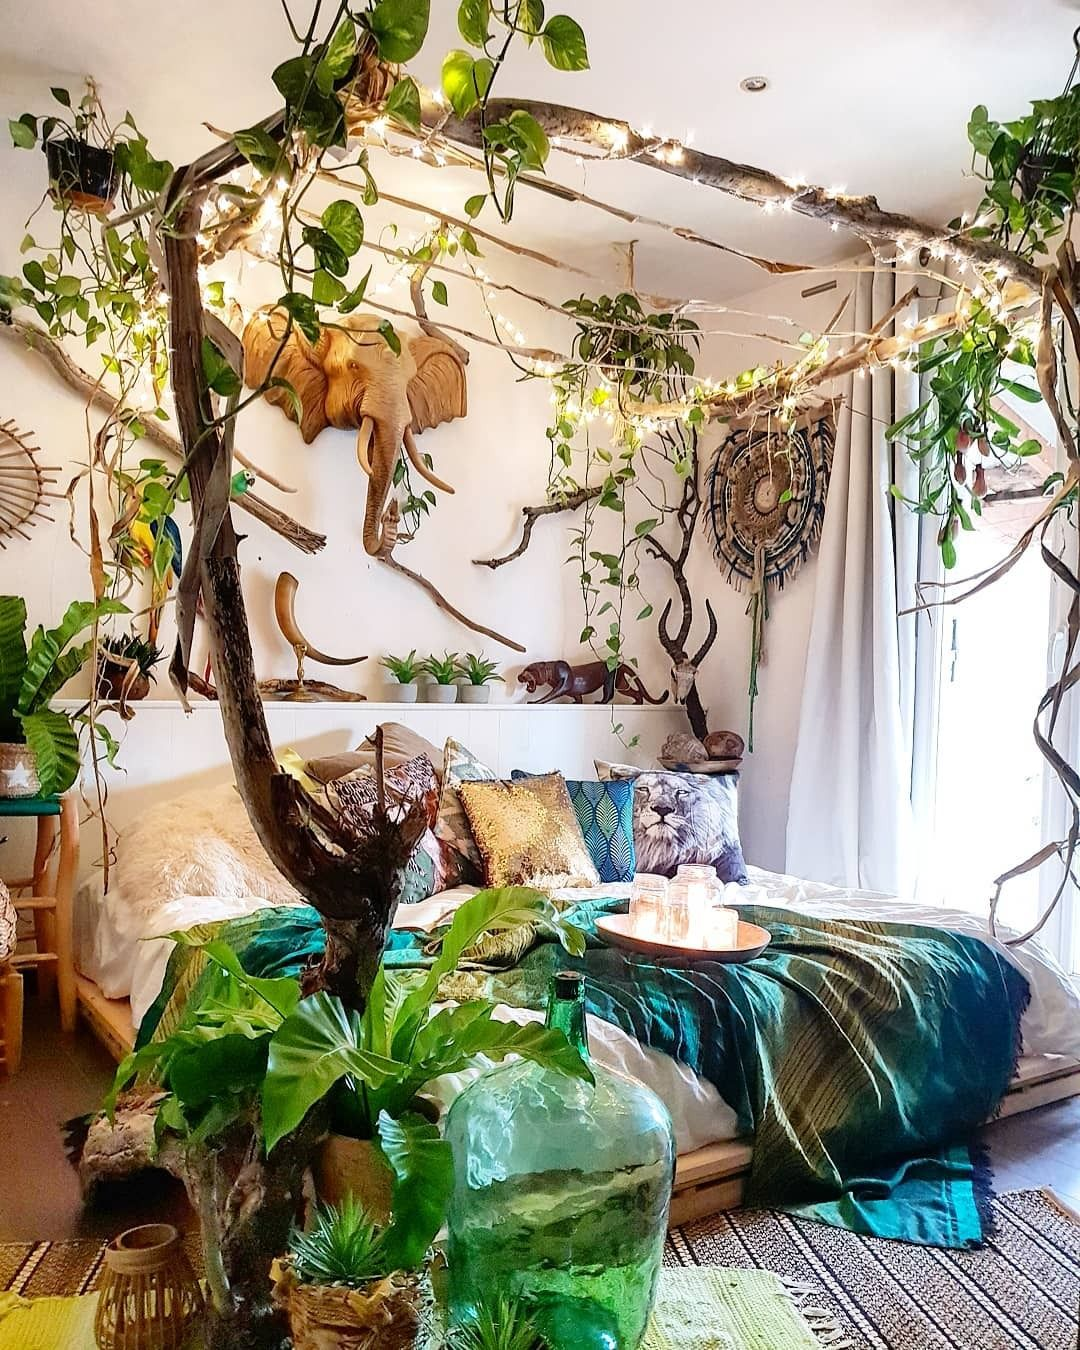 Urban Jungle Photo Jungle Room Decor Jungle Bedroom Decor Jungle Bedroom